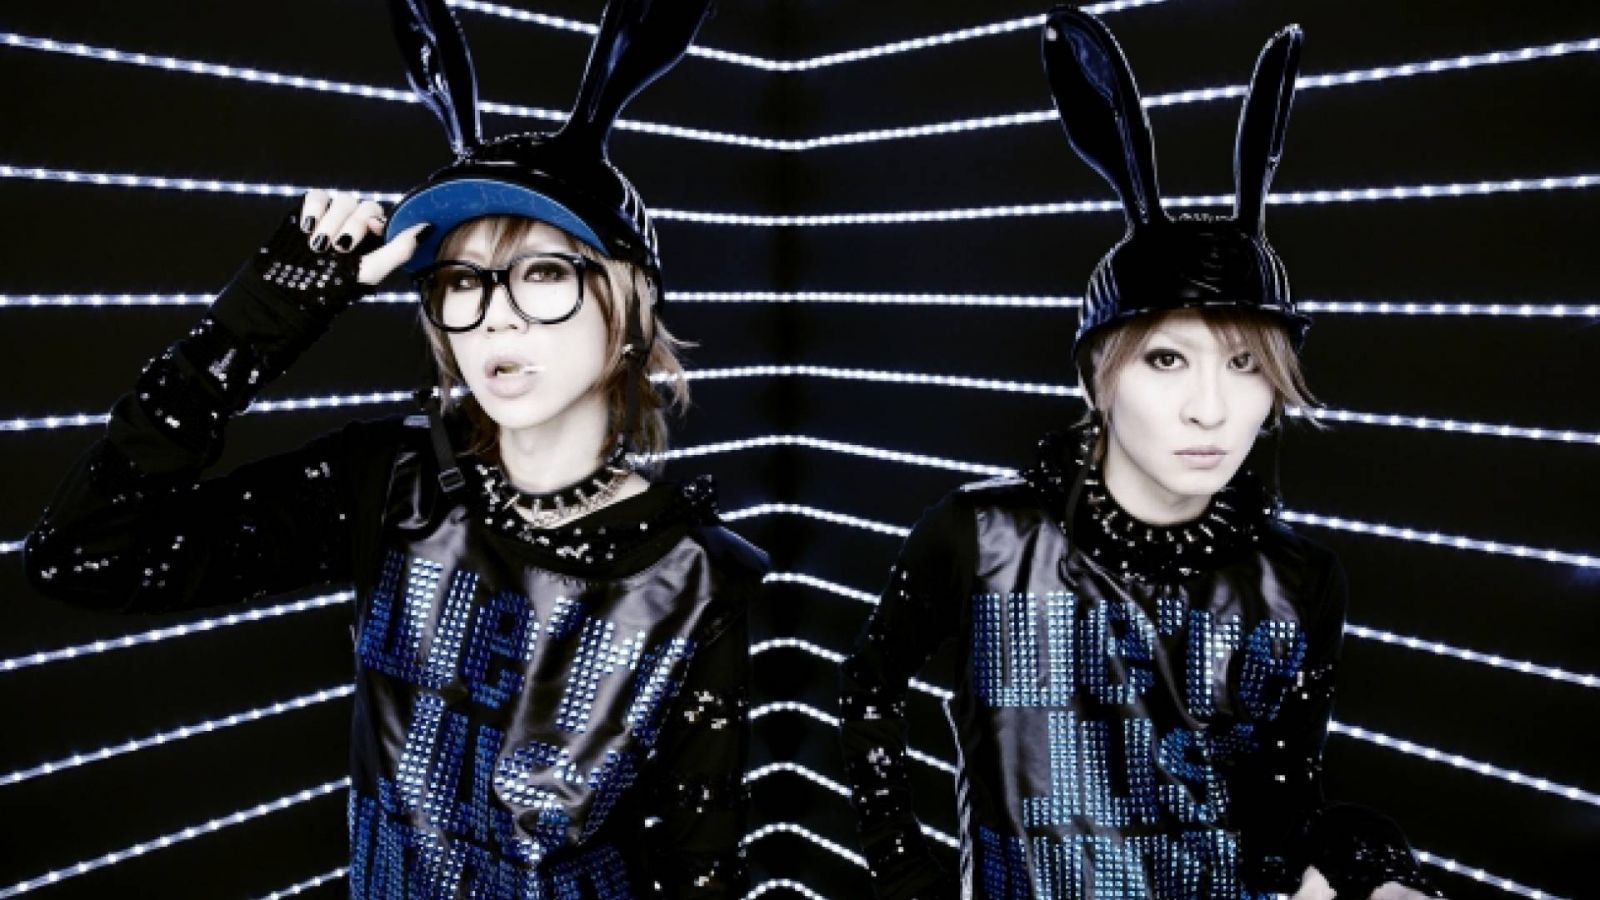 Details of LM.C's New Single © LM.C - PONY CANYON INC.